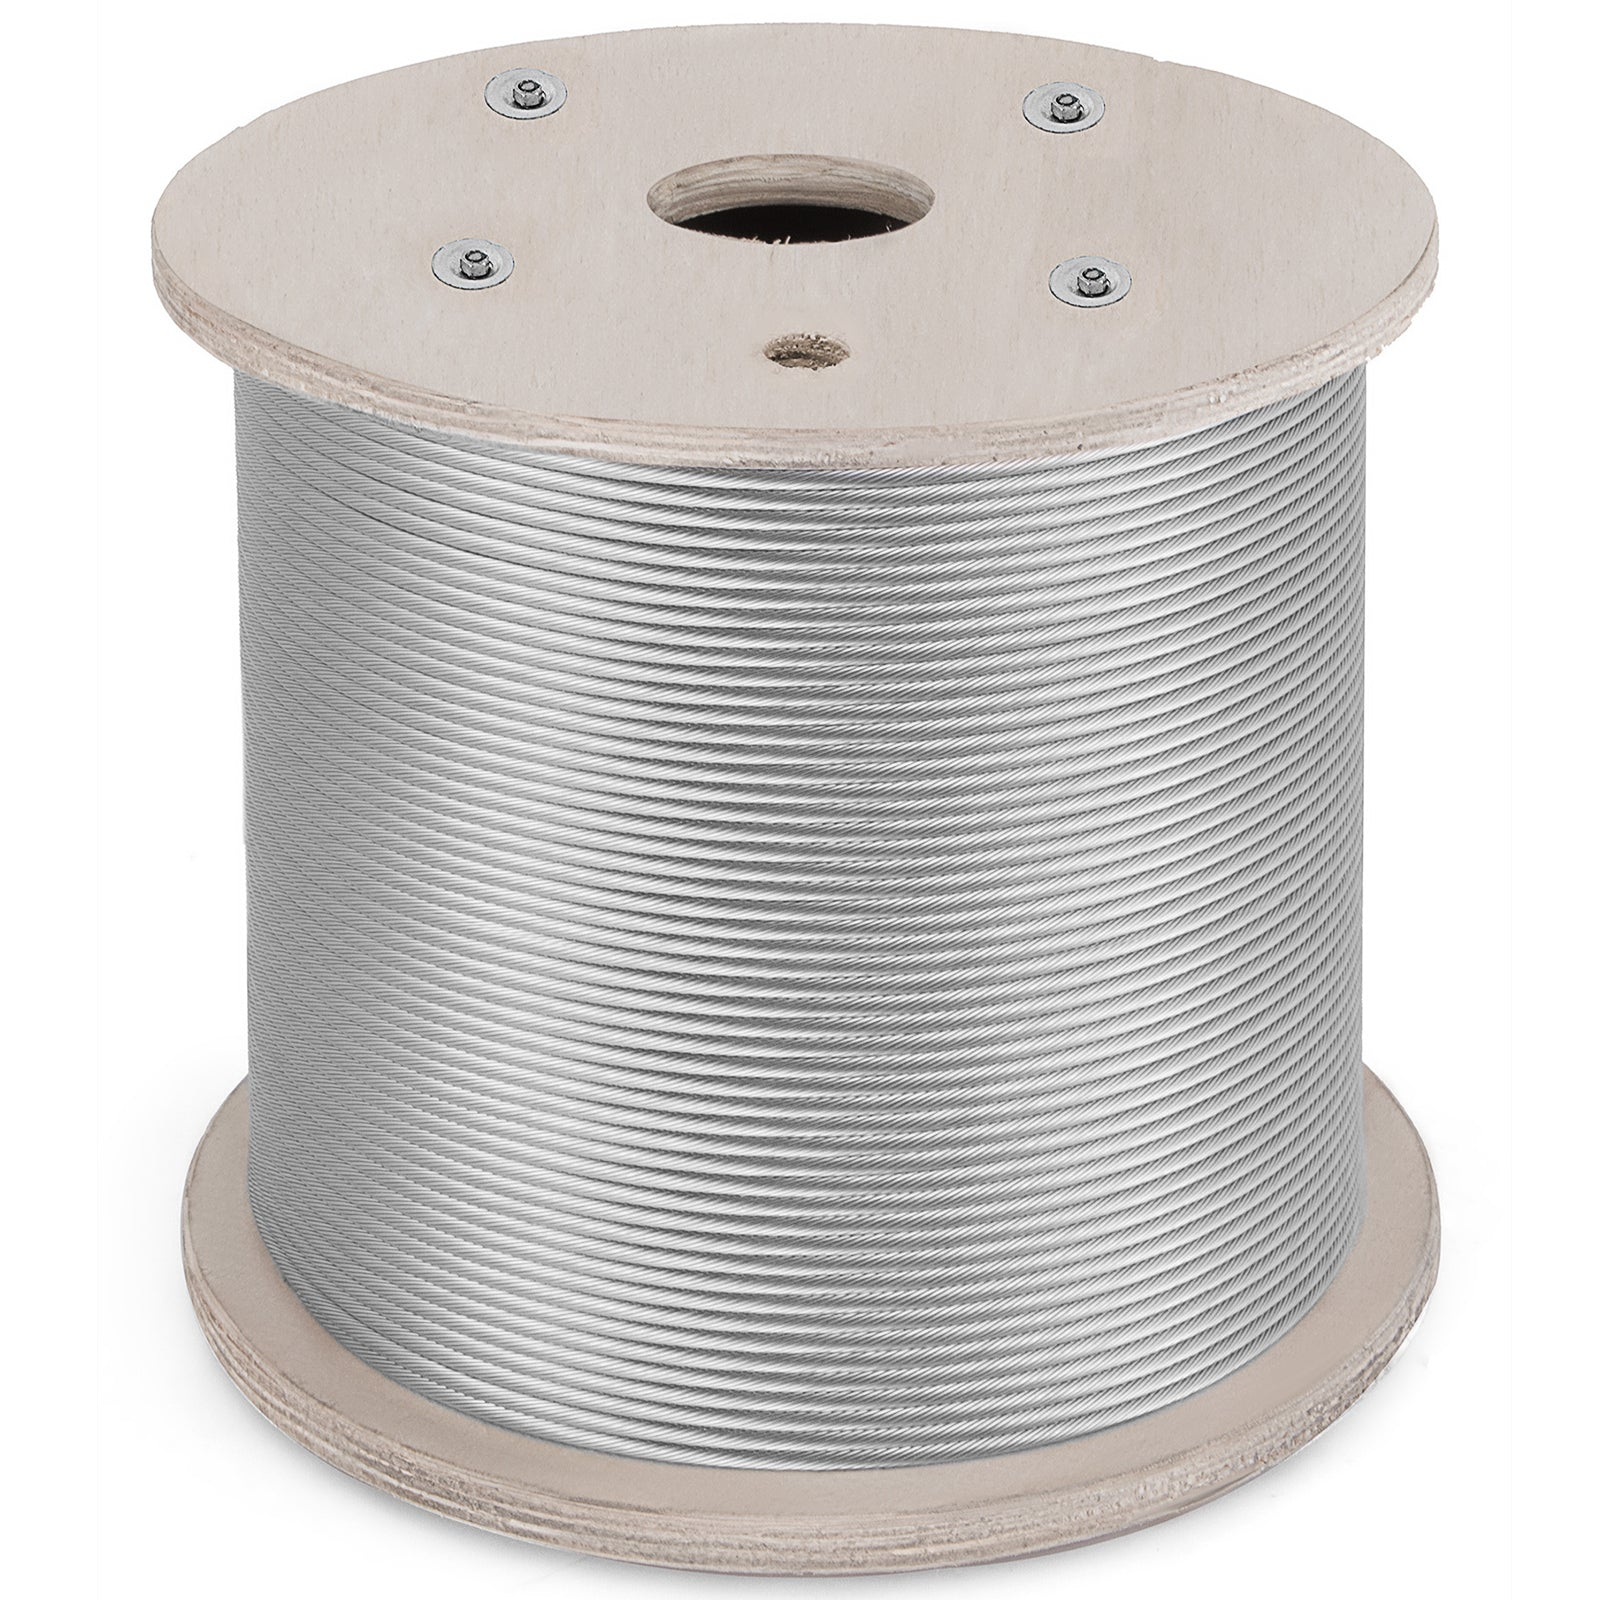 "T316 Stainless Steel Cable Wire Rope,3/8"",7x19,100ft Lifting Rigging Strand"